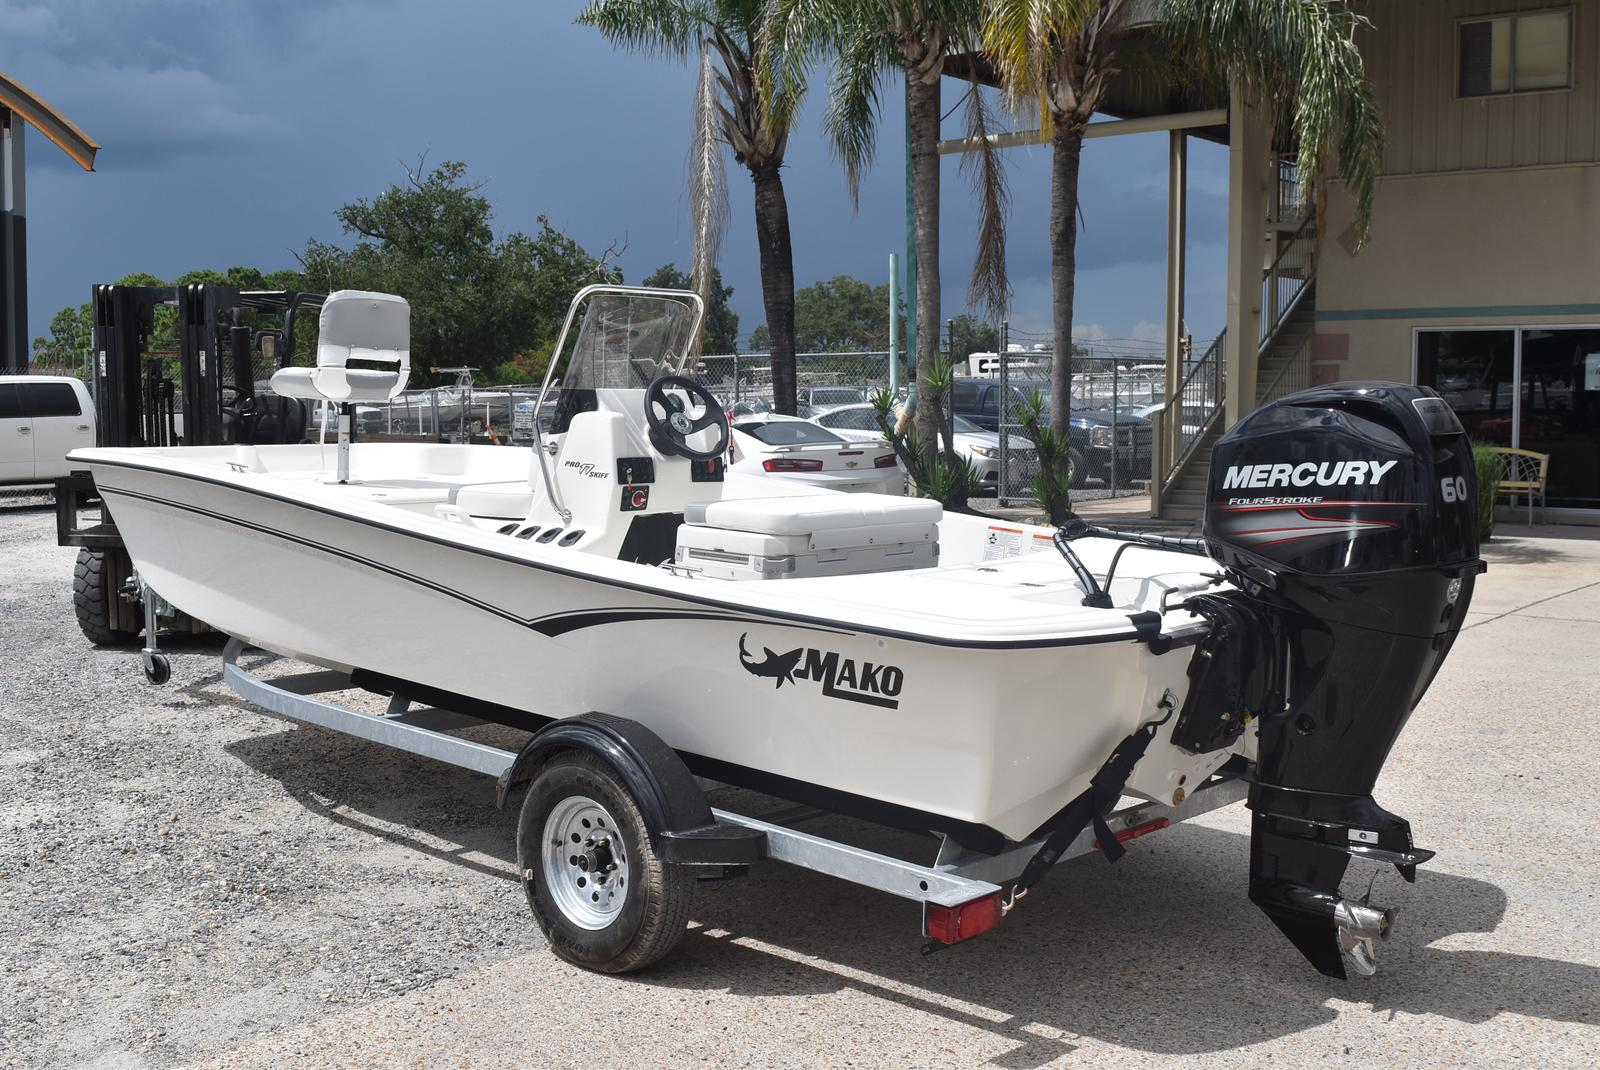 2020 Mako boat for sale, model of the boat is Pro Skiff 17, 75 ELPT & Image # 232 of 702